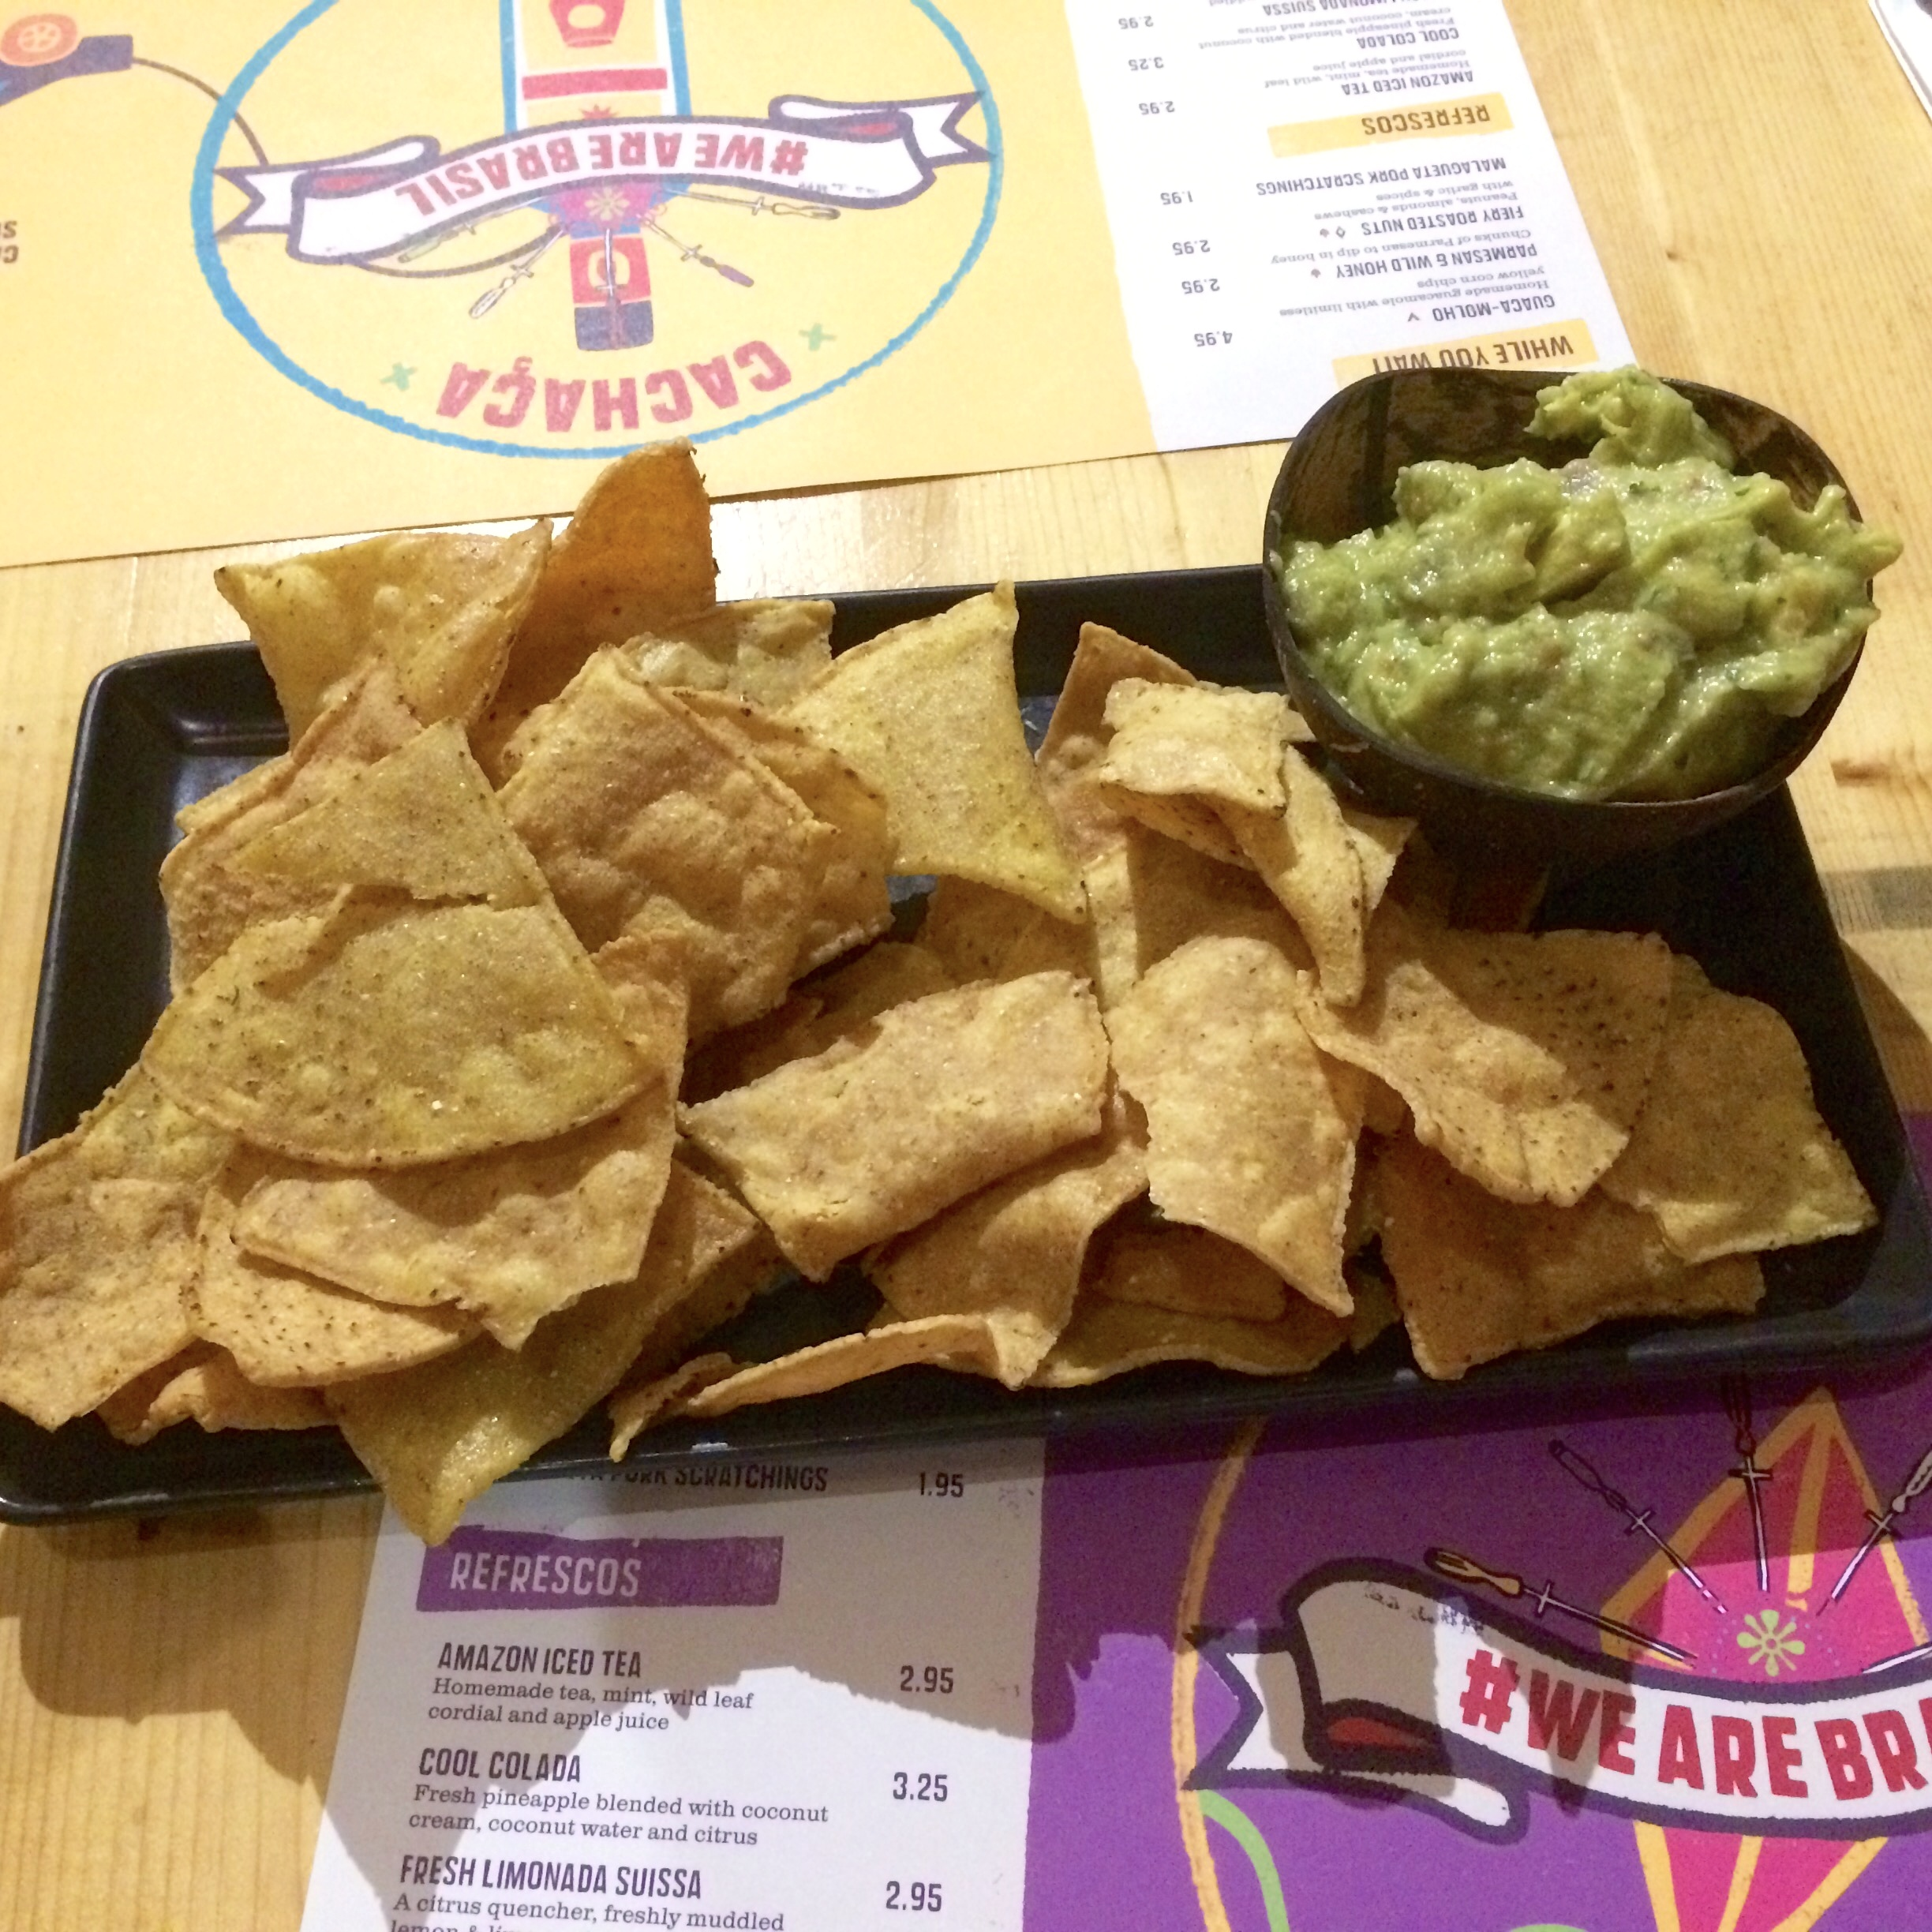 https://i0.wp.com/fatgayvegan.com/wp-content/uploads/2015/12/tortilla-chips.jpg?fit=2448%2C2448